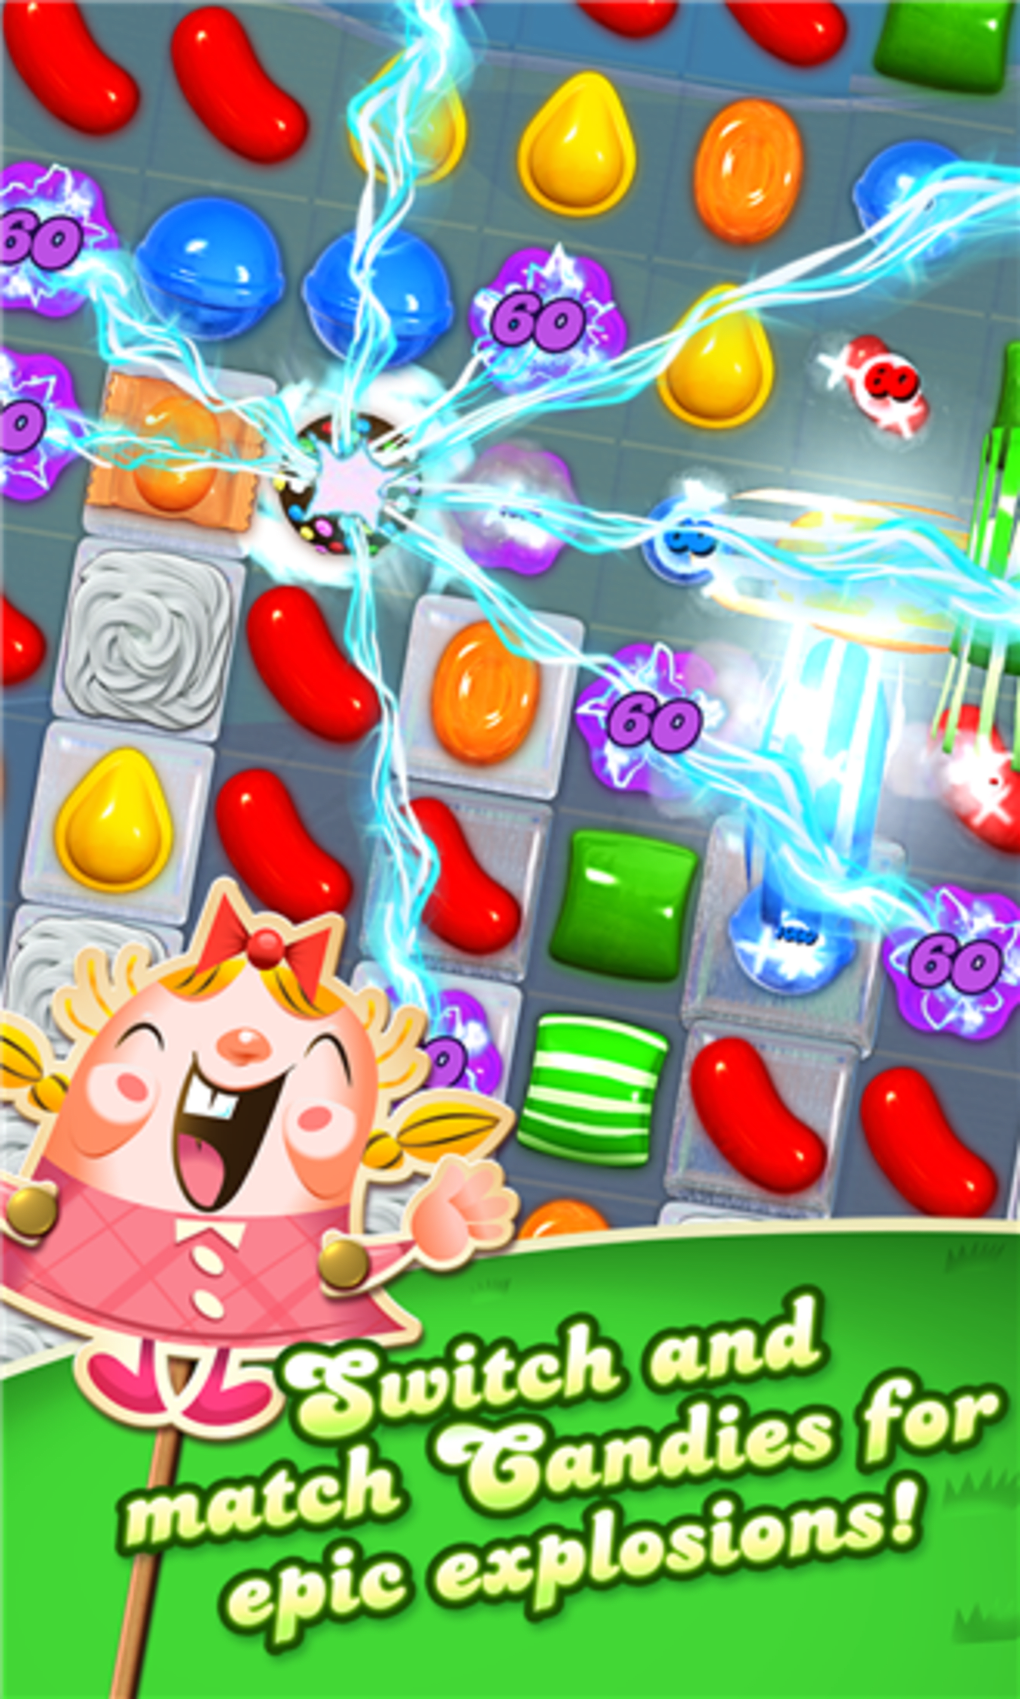 Candy Crush Saga Plattformen